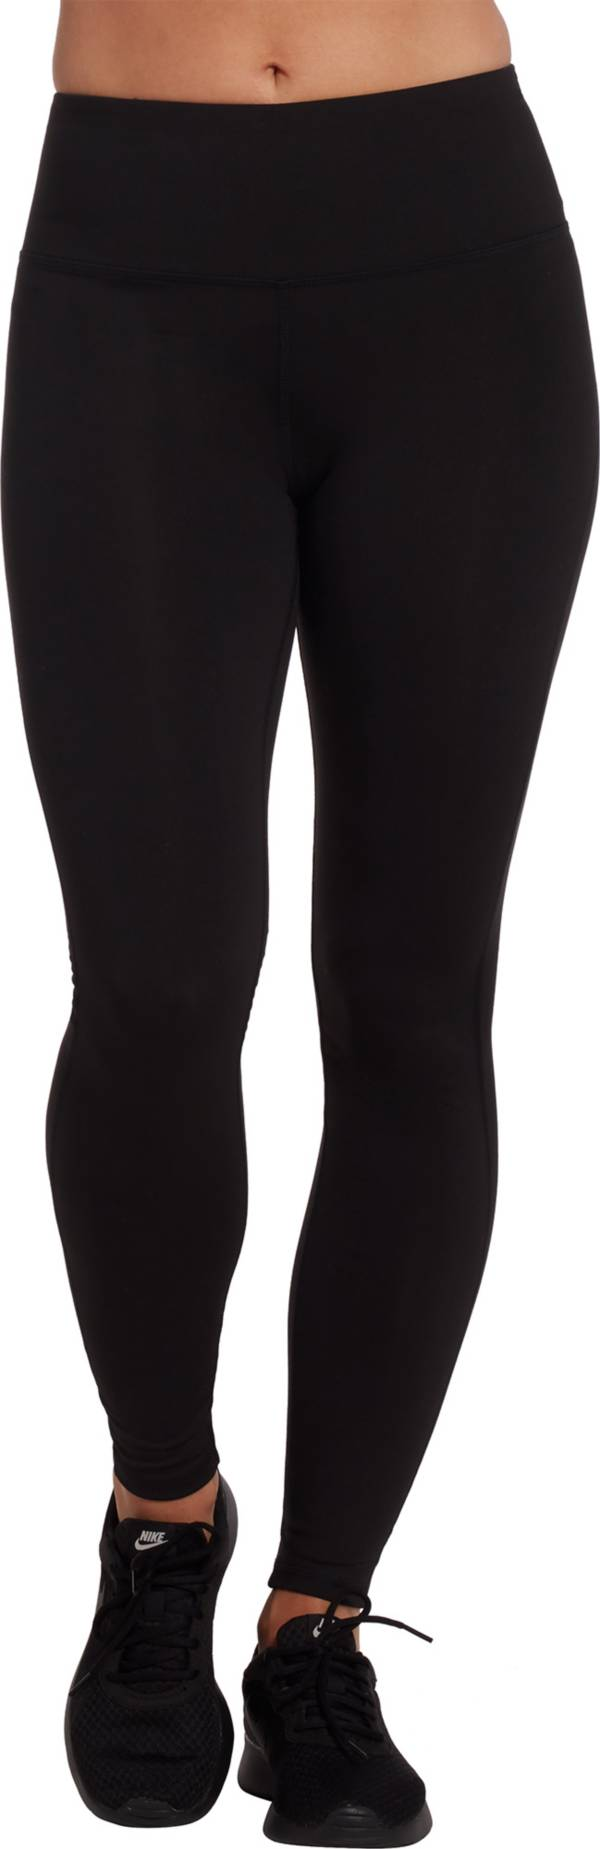 DSG Women's Core Performance Leggings product image